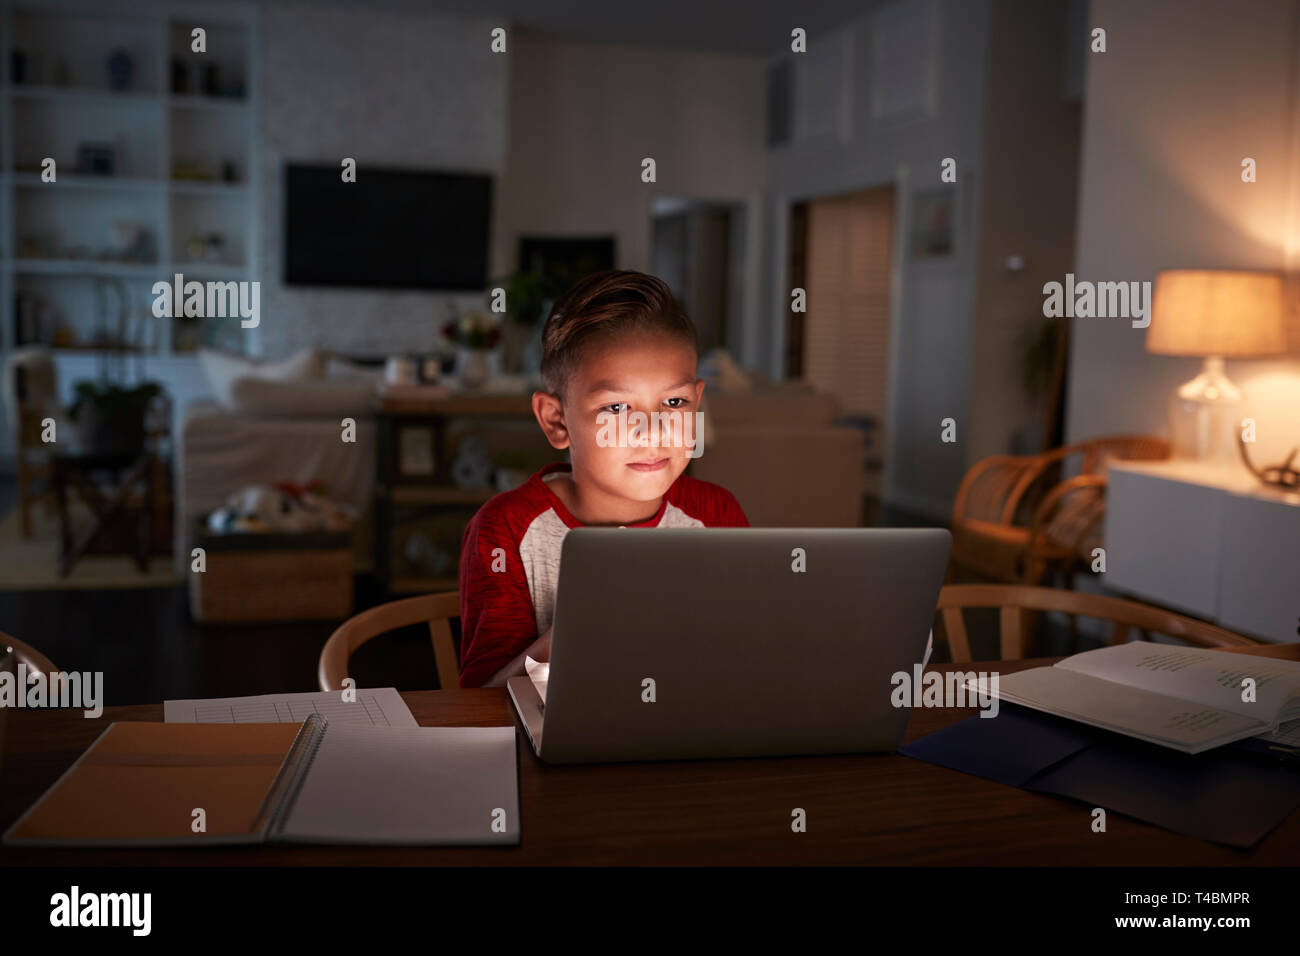 Pre-teen Hispanic boy sitting at dining table doing his homework using a laptop computer, front view - Stock Image